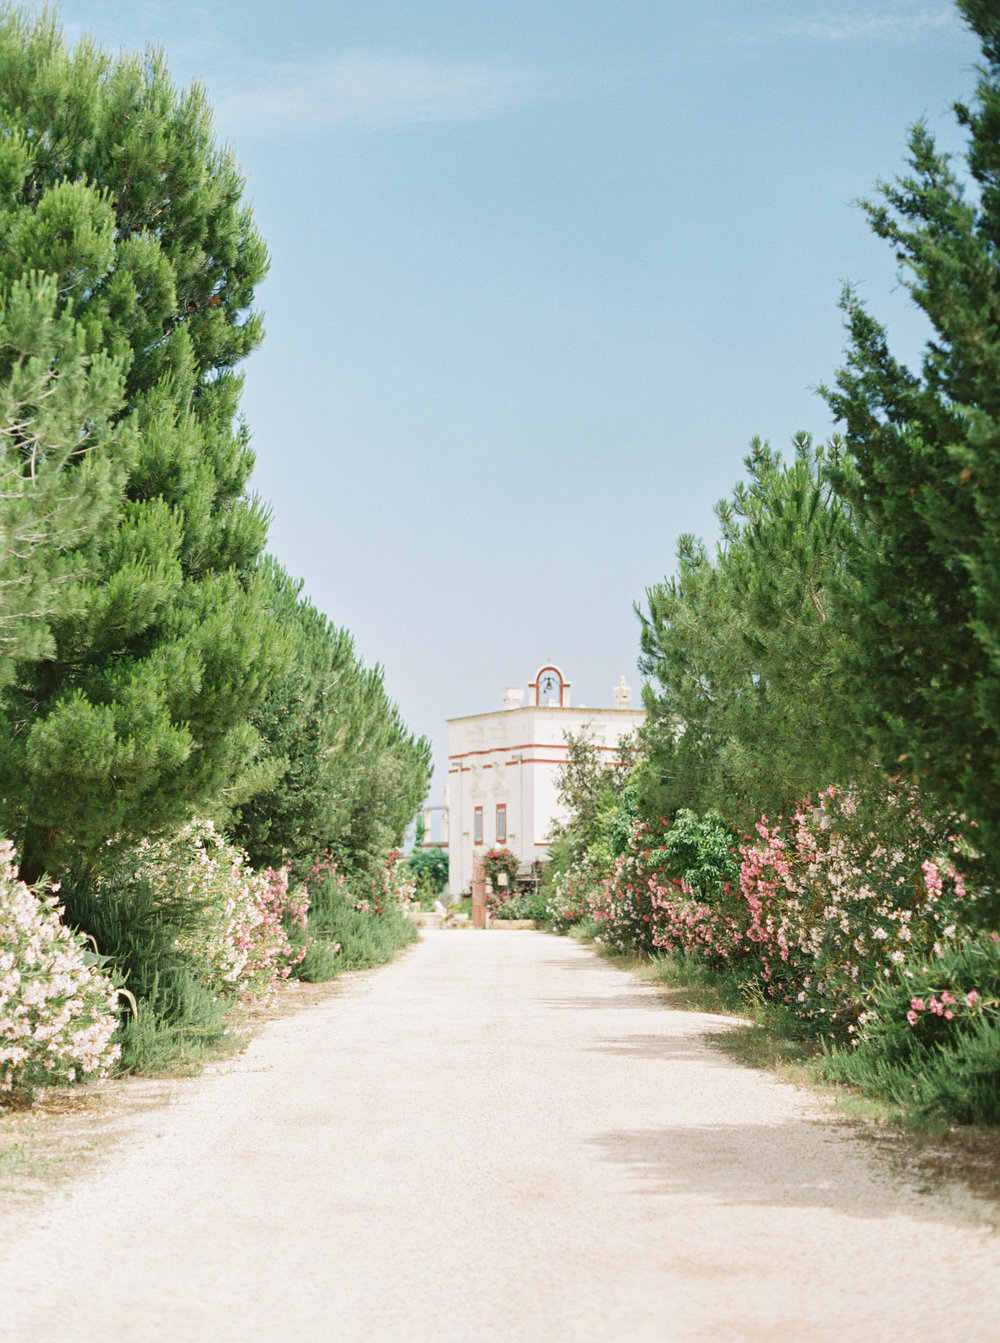 Destination wedding in Puglia, Italy - planned by Meggie Francisco, photographed by Tracy Enoch, video by Innar Hunt